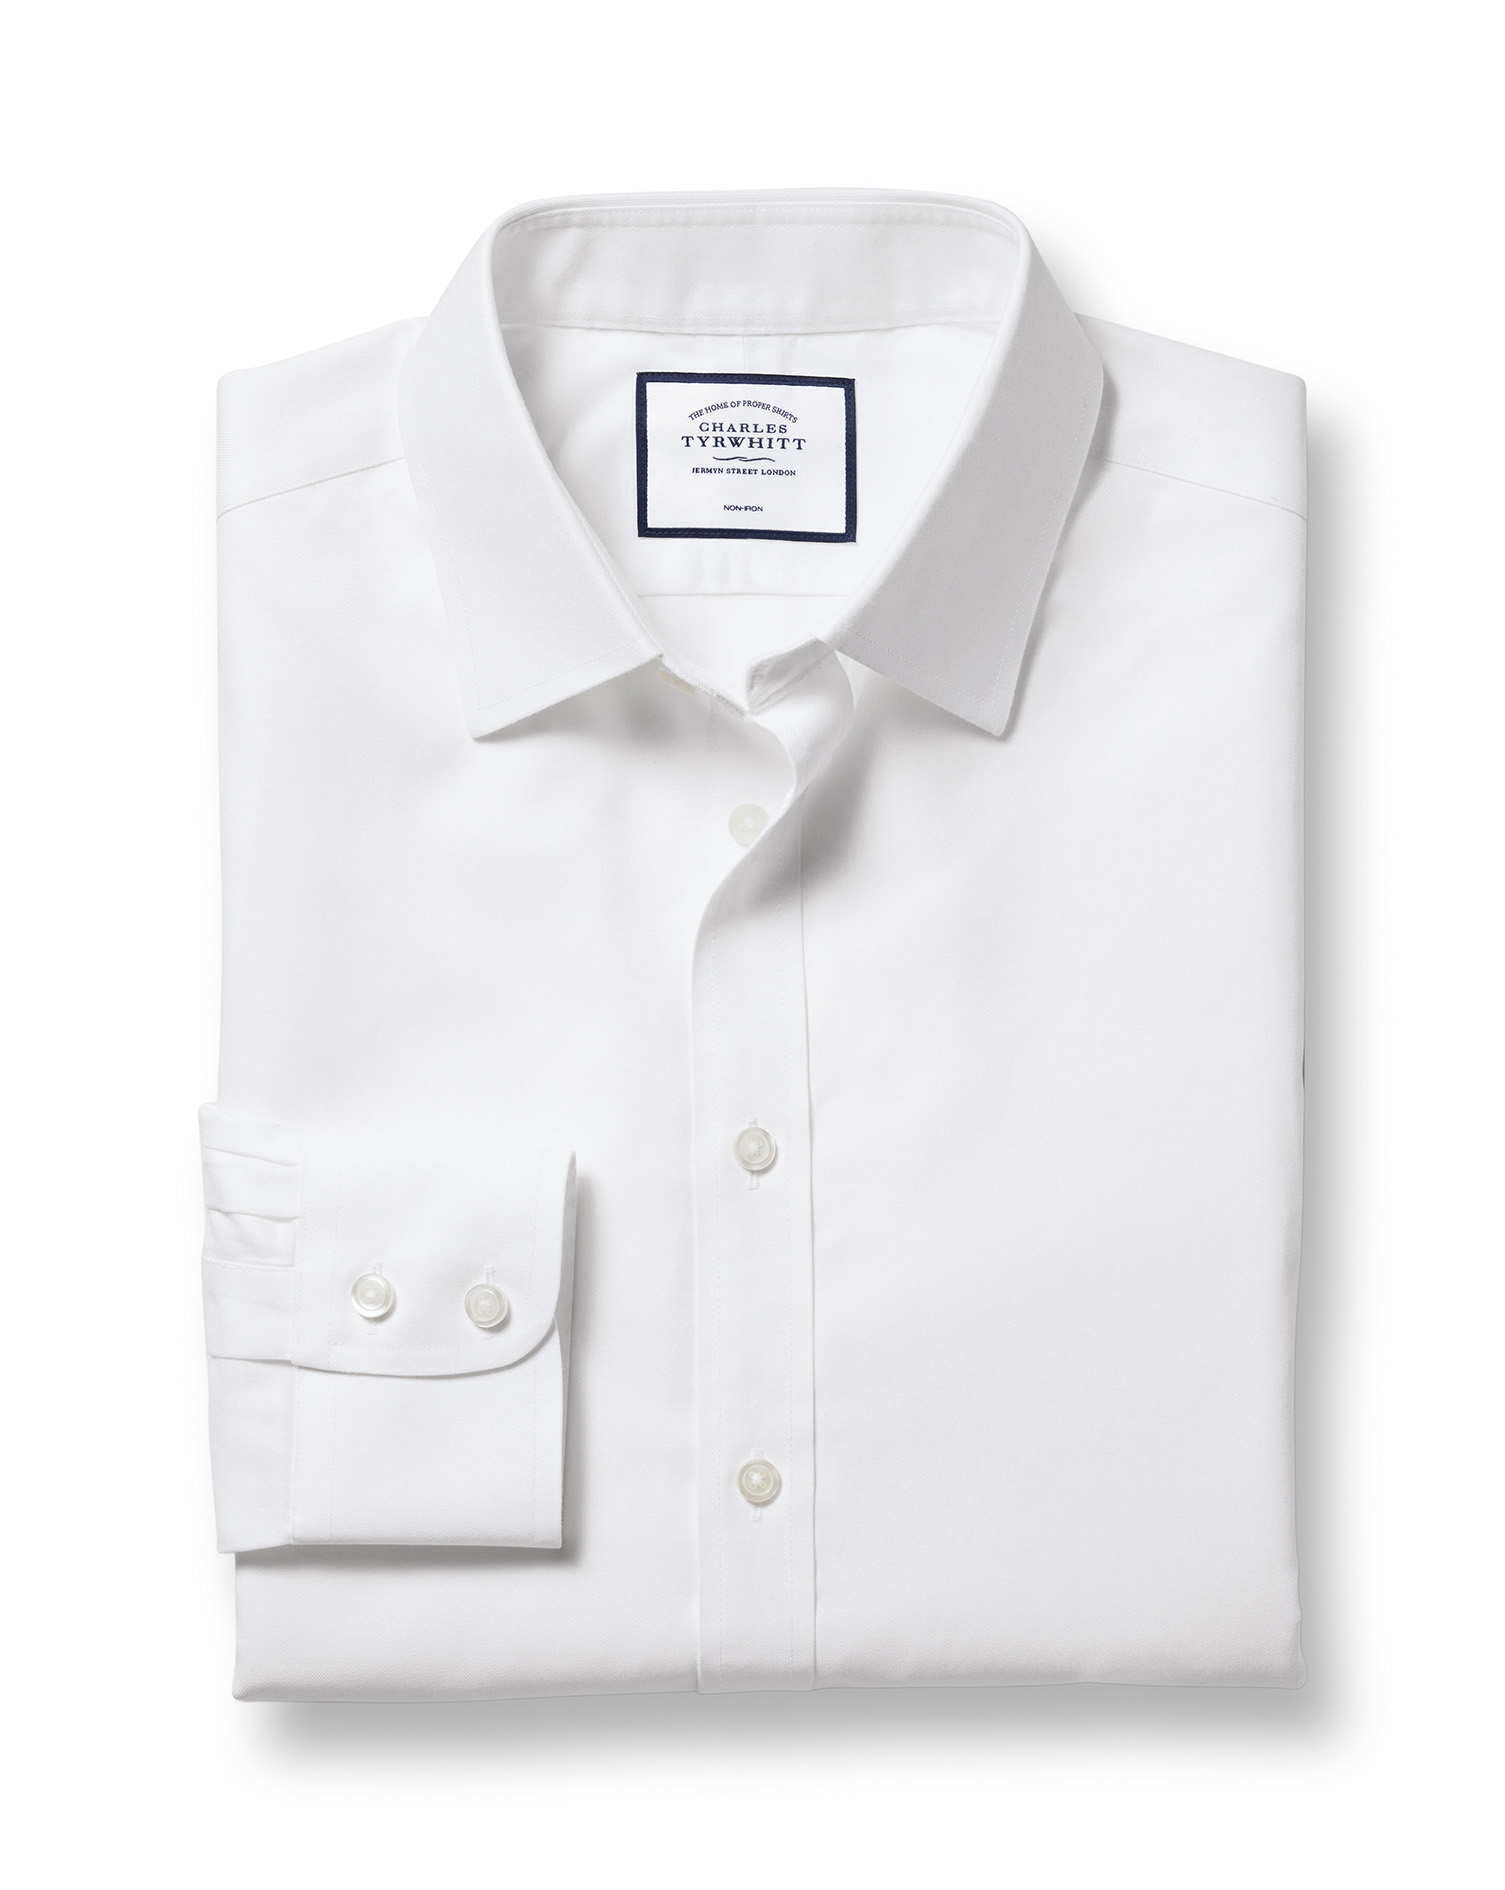 Extra Slim Fit Non-Iron Twill White Cotton Formal Shirt Single Cuff Size 15.5/34 by Charles Tyrwhitt